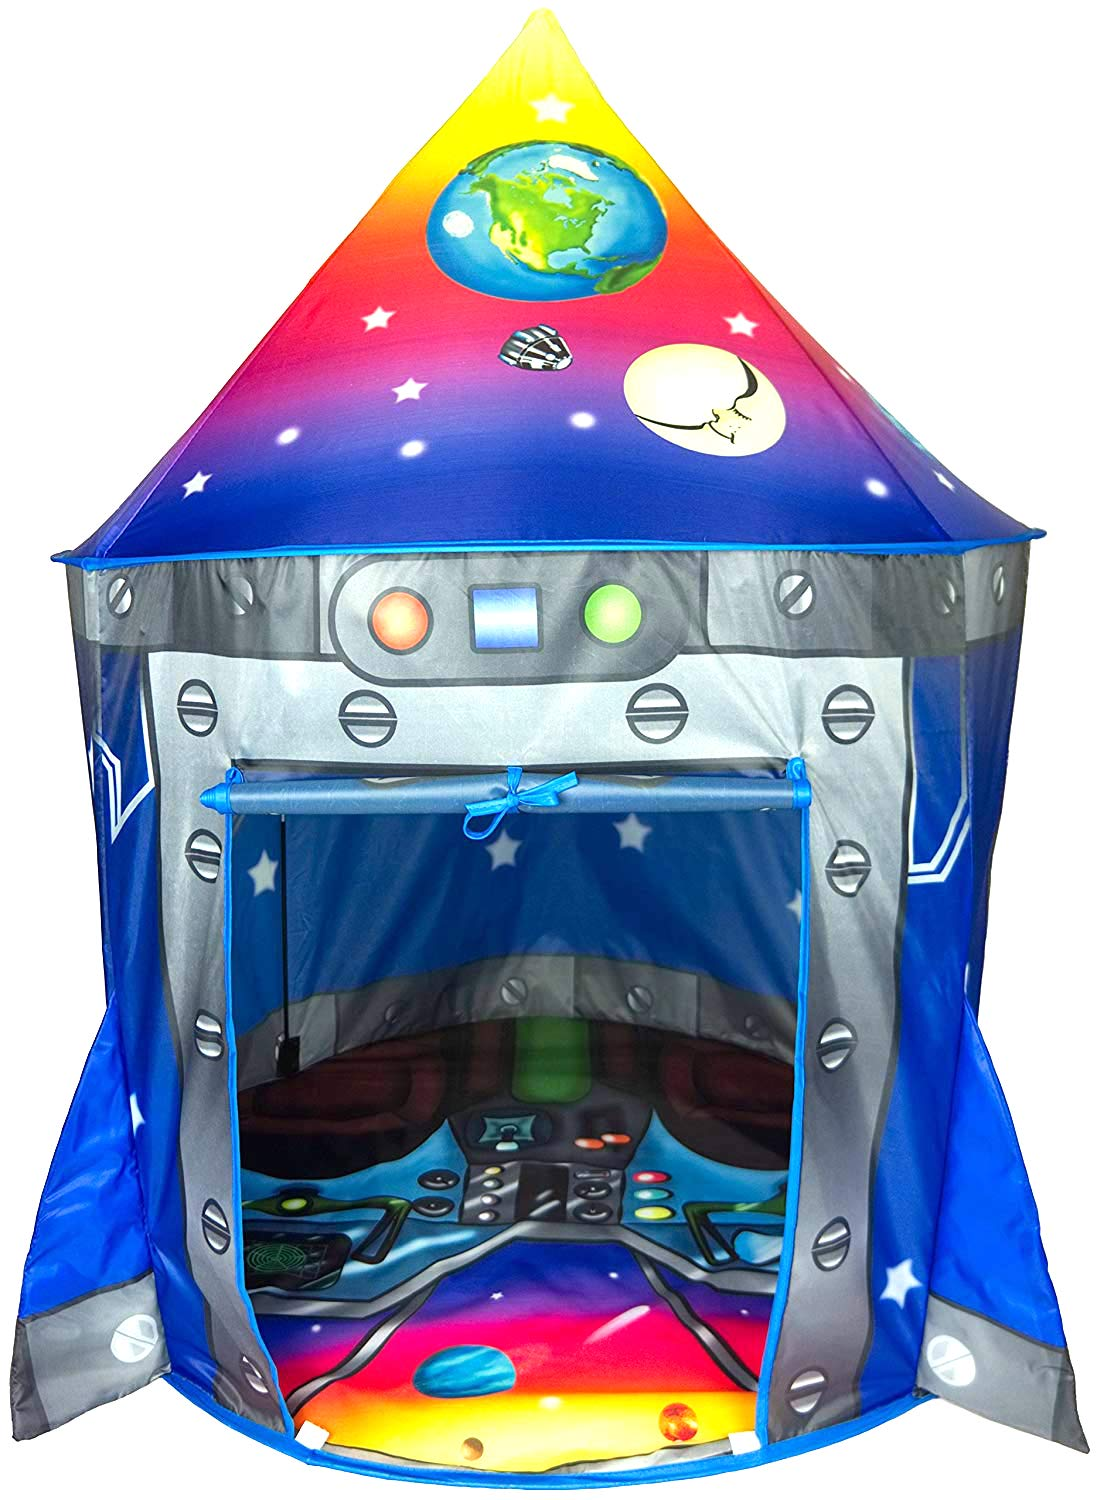 Rocket Ship Play Tent Playhouse | Unique Space and Planet Design for Indoor and Outdoor Fun, Imaginative Games & Gift | Foldable Playhouse Toy + Carry Bag for Boys & Girls | by Imagenius Toys ImpiriLux